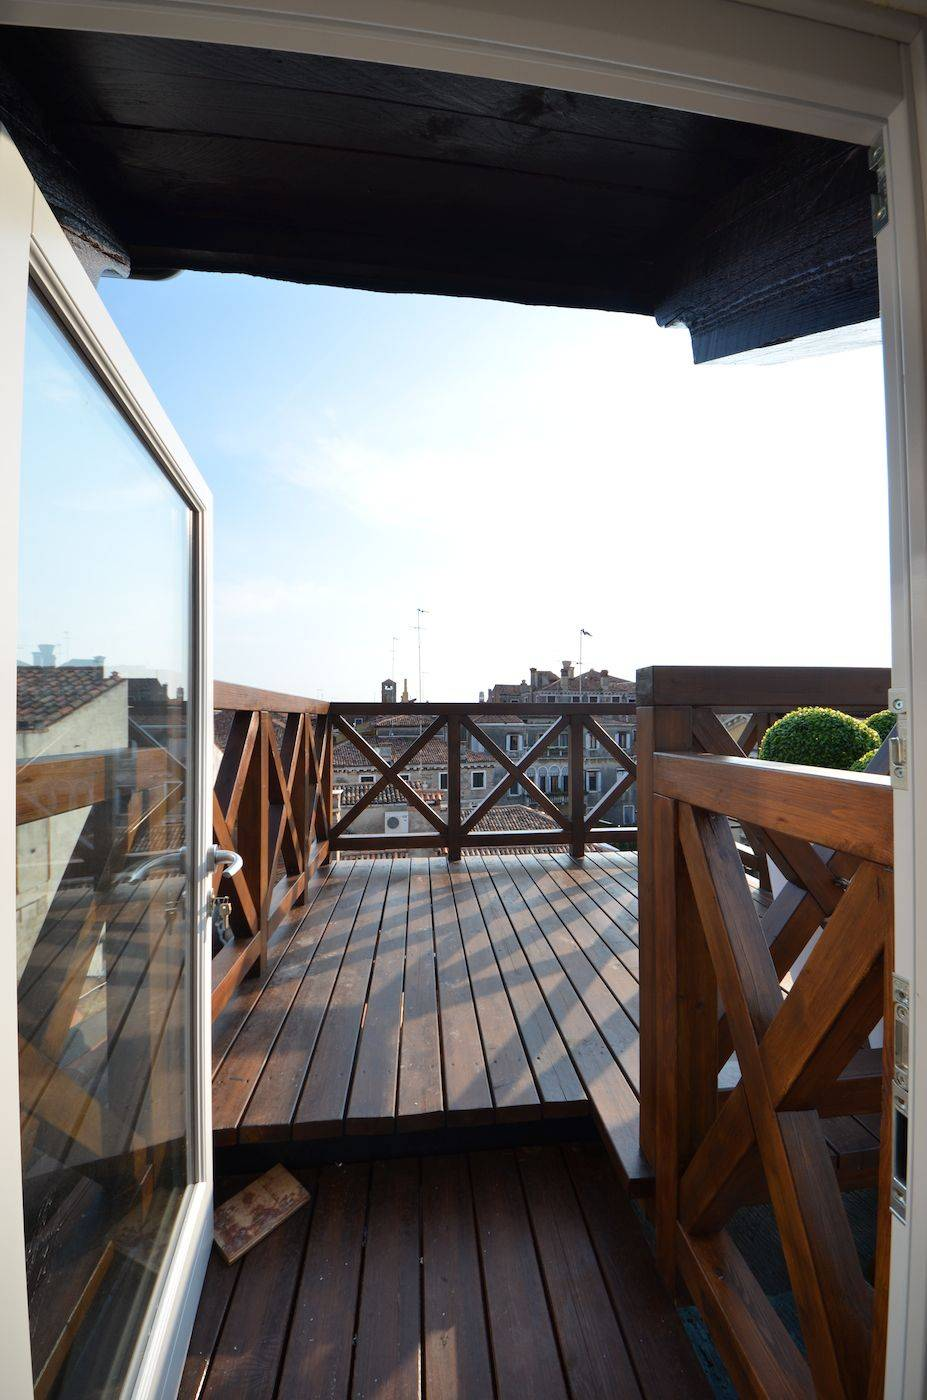 easy access to the panoramic Altana or roof-top terrace